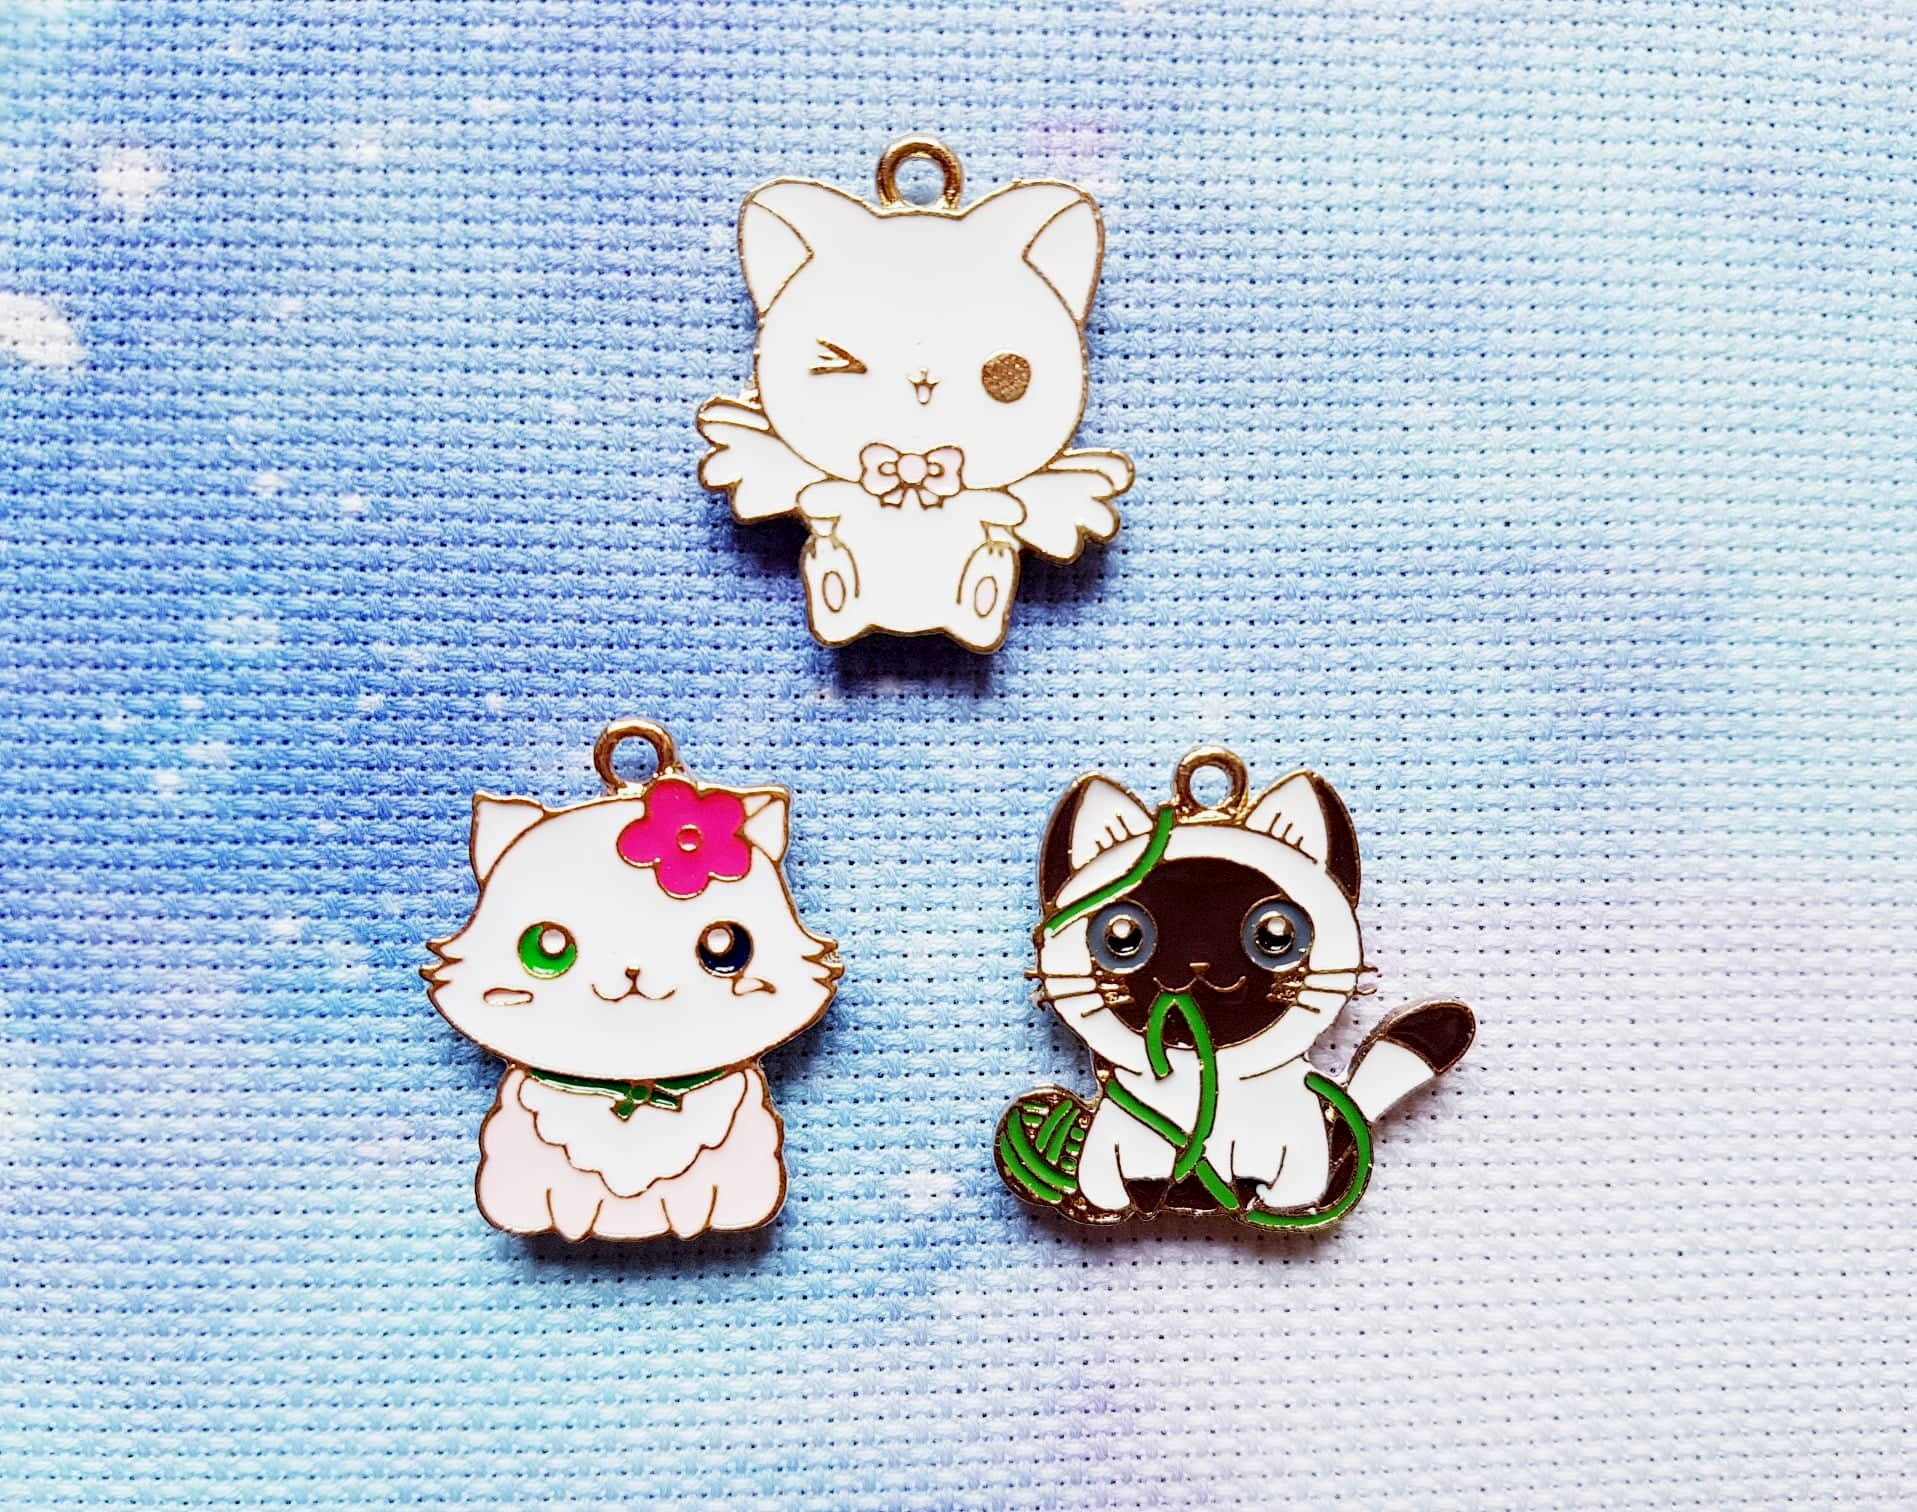 Anime Cat With Wings 3 cat needle minders, anime needle minder, cat magnet, anime magnet, cute  needle minder, kawaii needle minder, cross stitch, enamel, funny